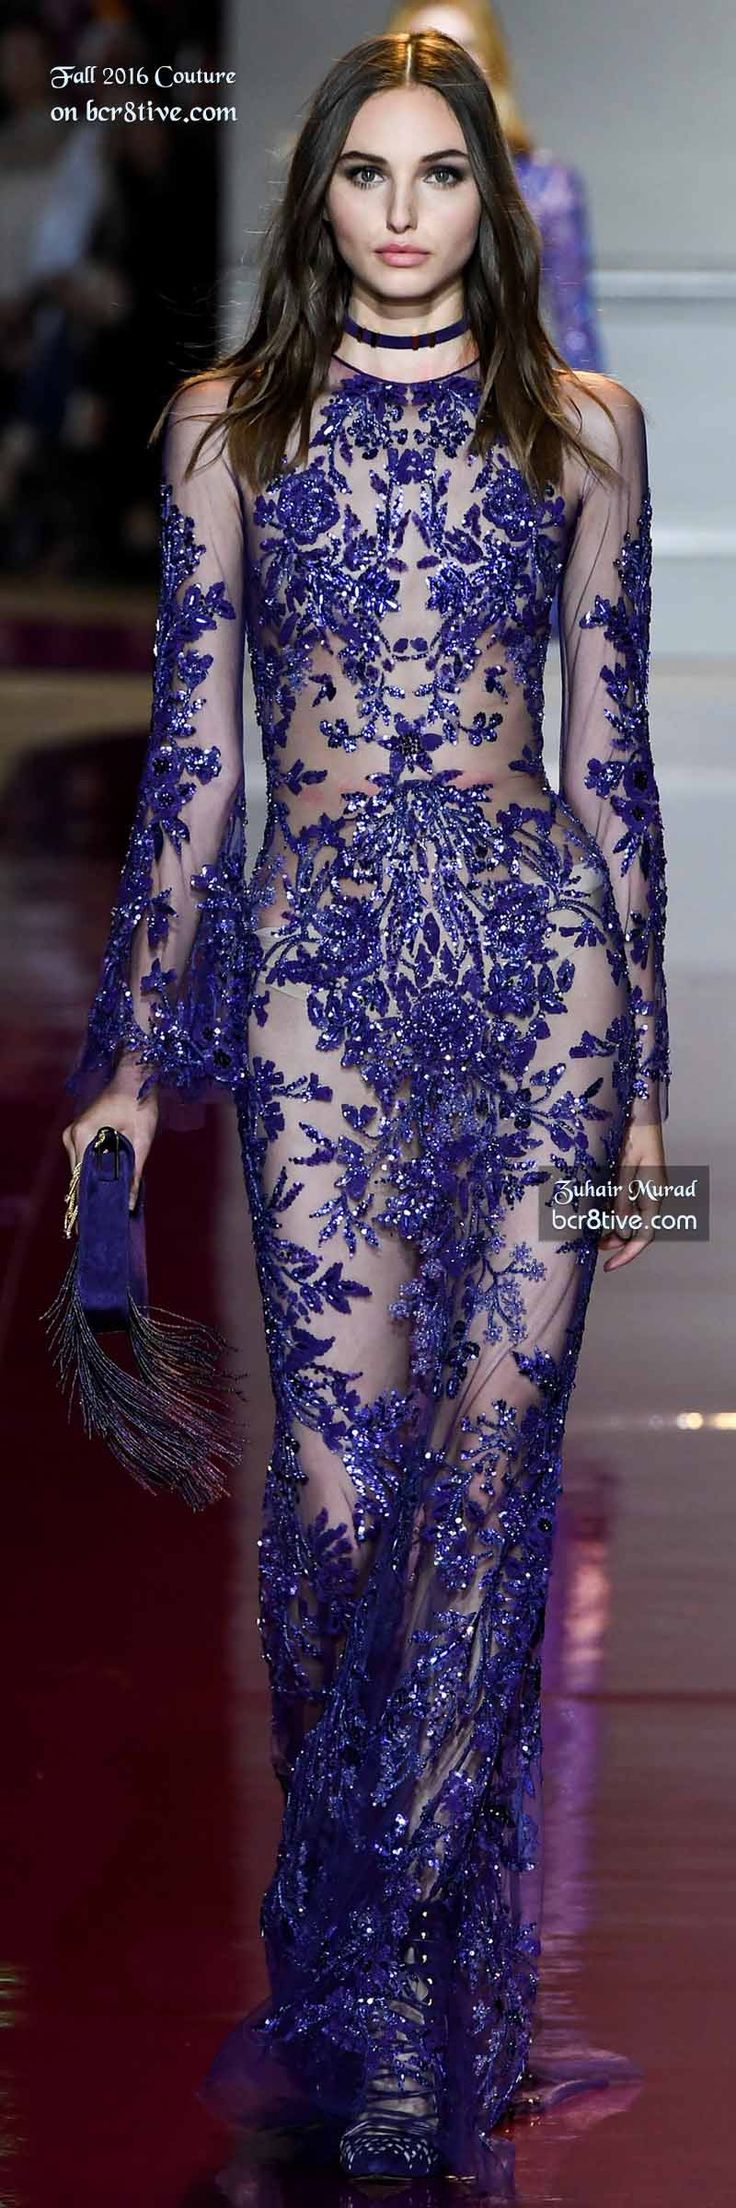 cool Zuhair Murad - The Best Fall 2016 Haute Couture Fashion... by http://www.polyvorebydana.us/high-fashion/zuhair-murad-the-best-fall-2016-haute-couture-fashion/